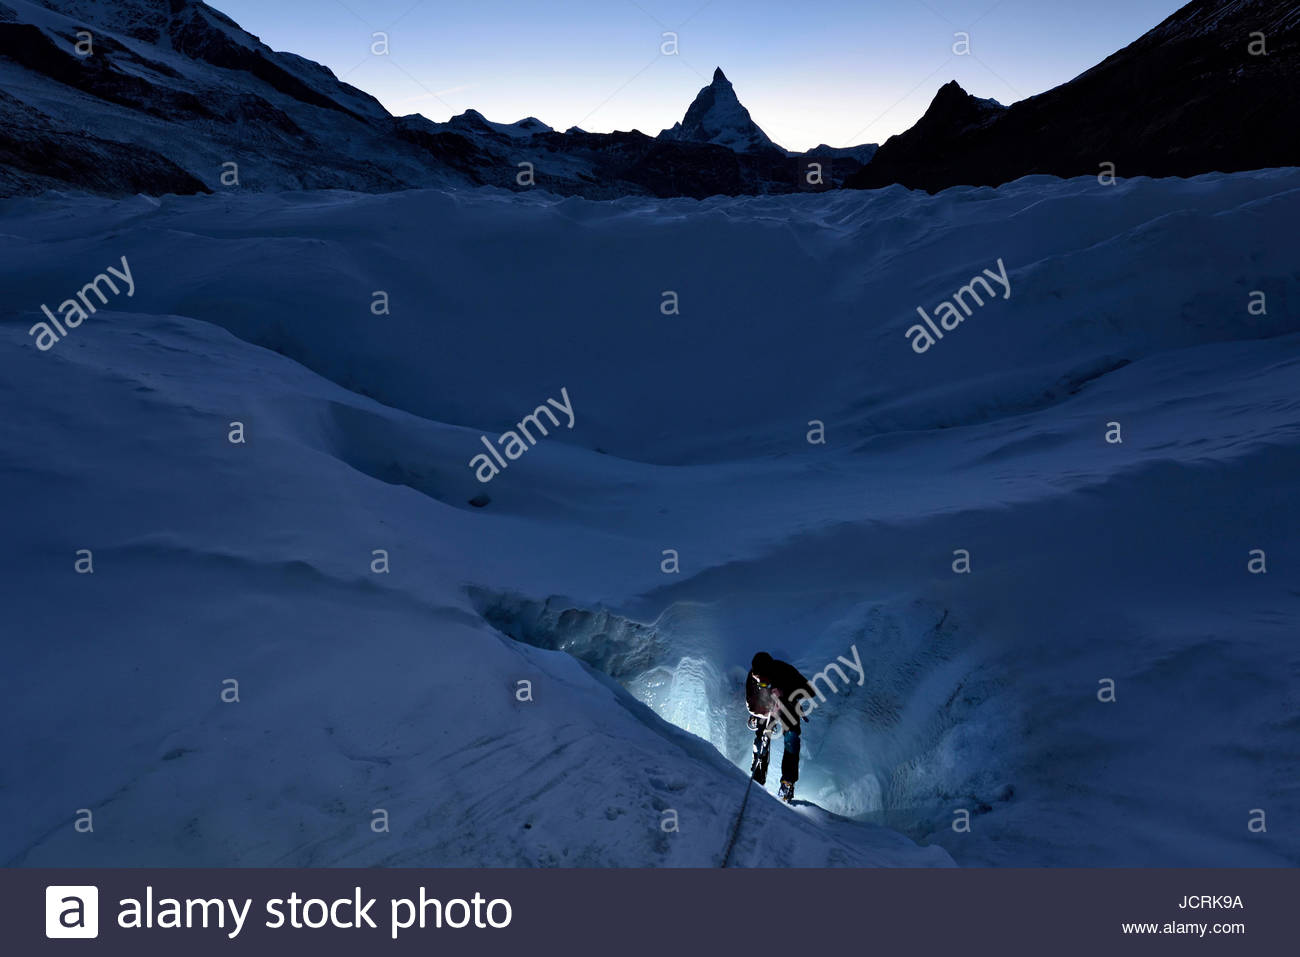 British cave explorer and glaciologist Sam Doyle emerges from a moulin in the early evening with the Matterhorn - Stock Image